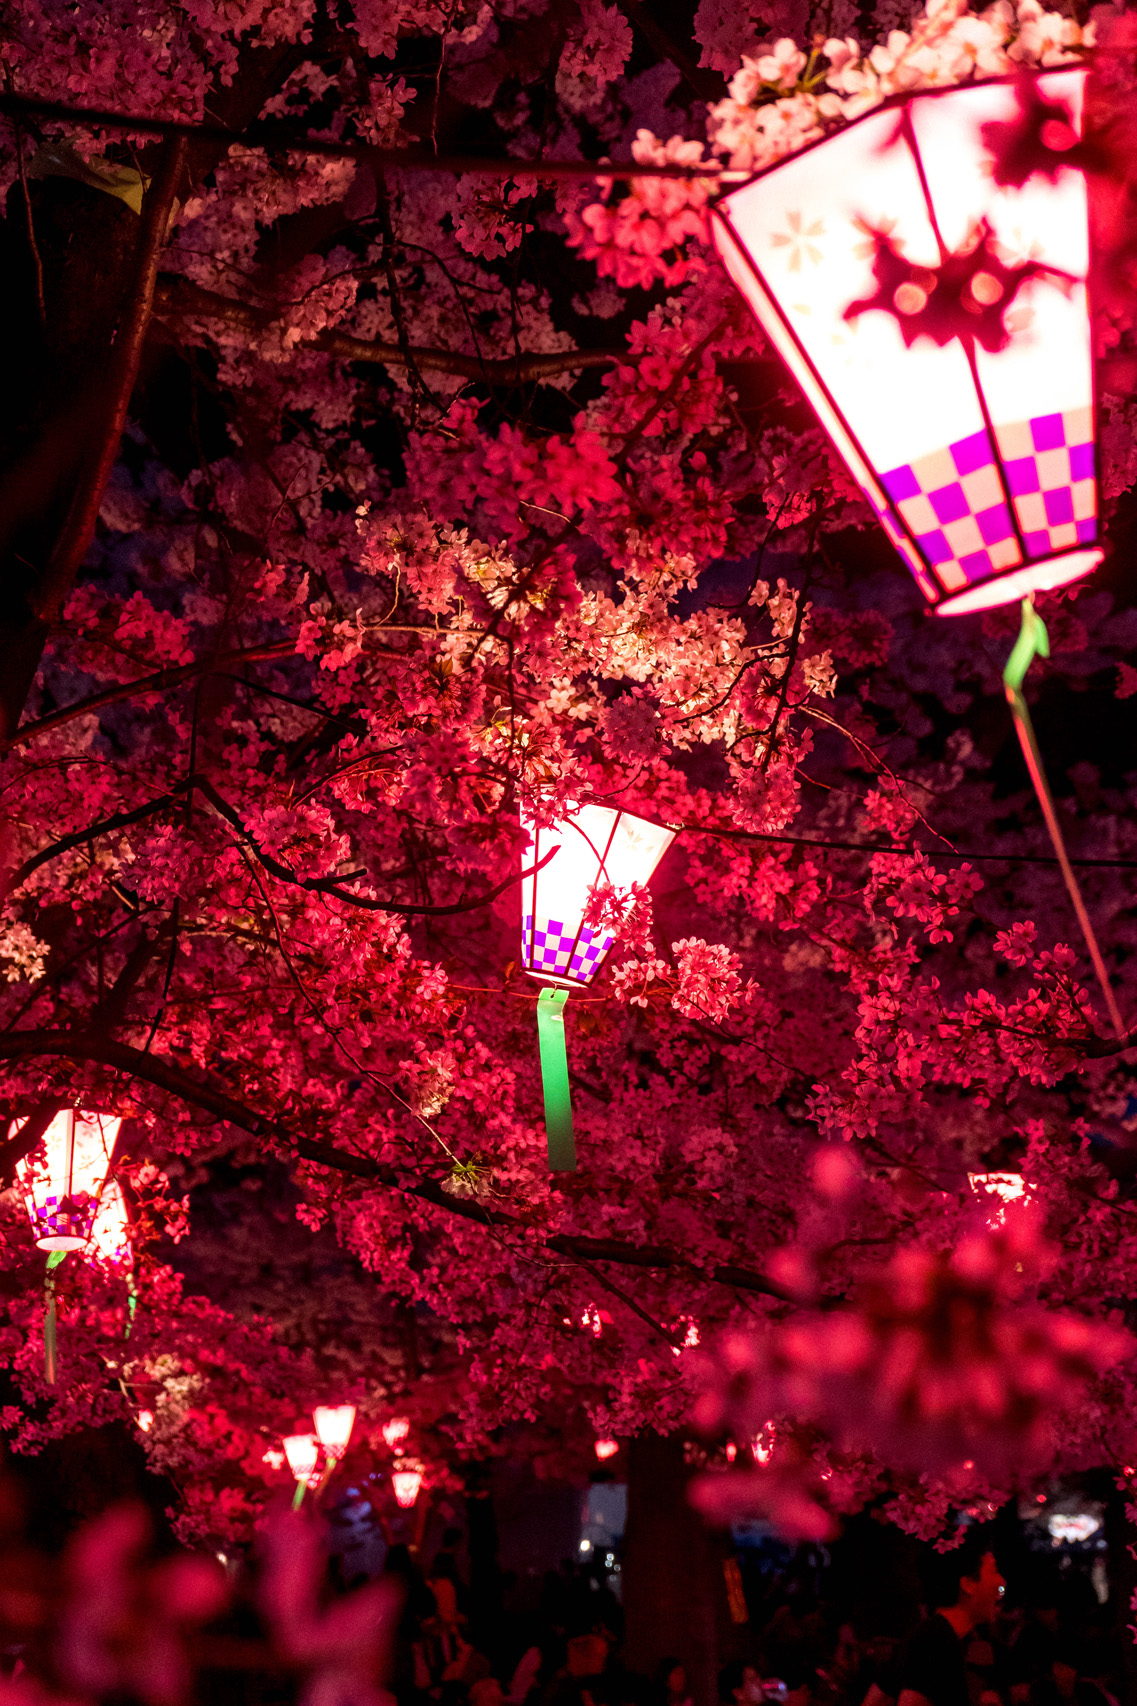 Lanterns and cherry blossoms in Tsurumai park, Nagoya